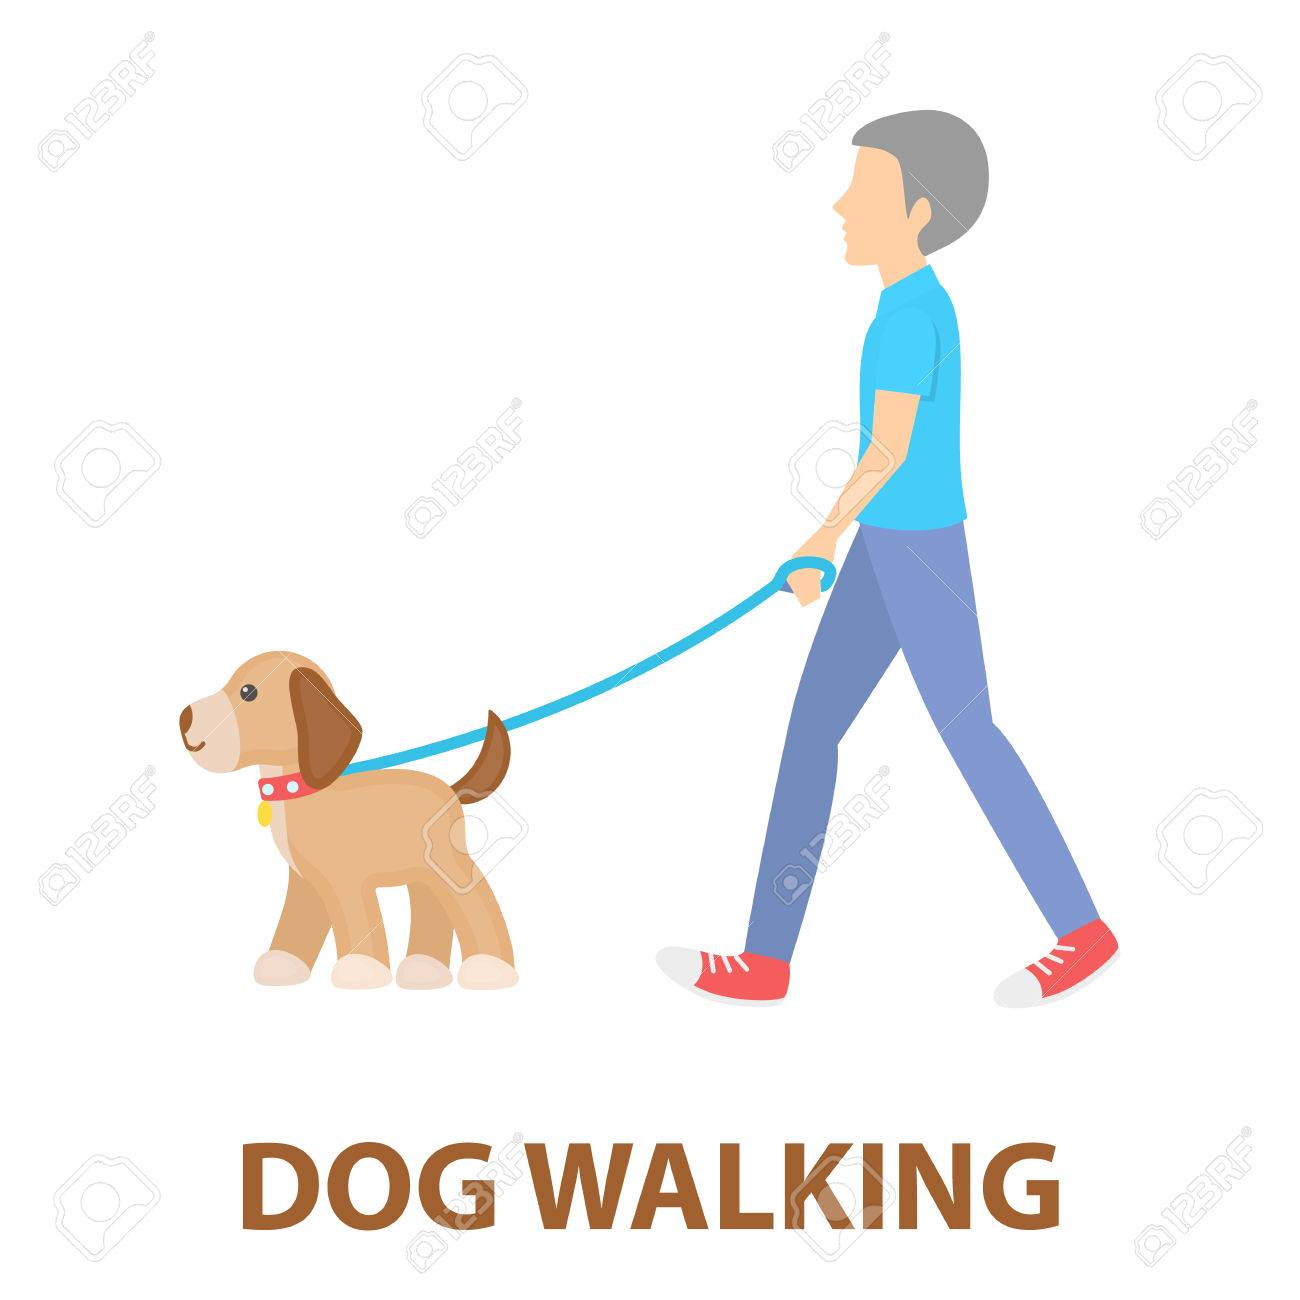 dog walk vector illustration icon in cartoon design royalty free cliparts vectors and stock illustration image 61566020 dog walk vector illustration icon in cartoon design